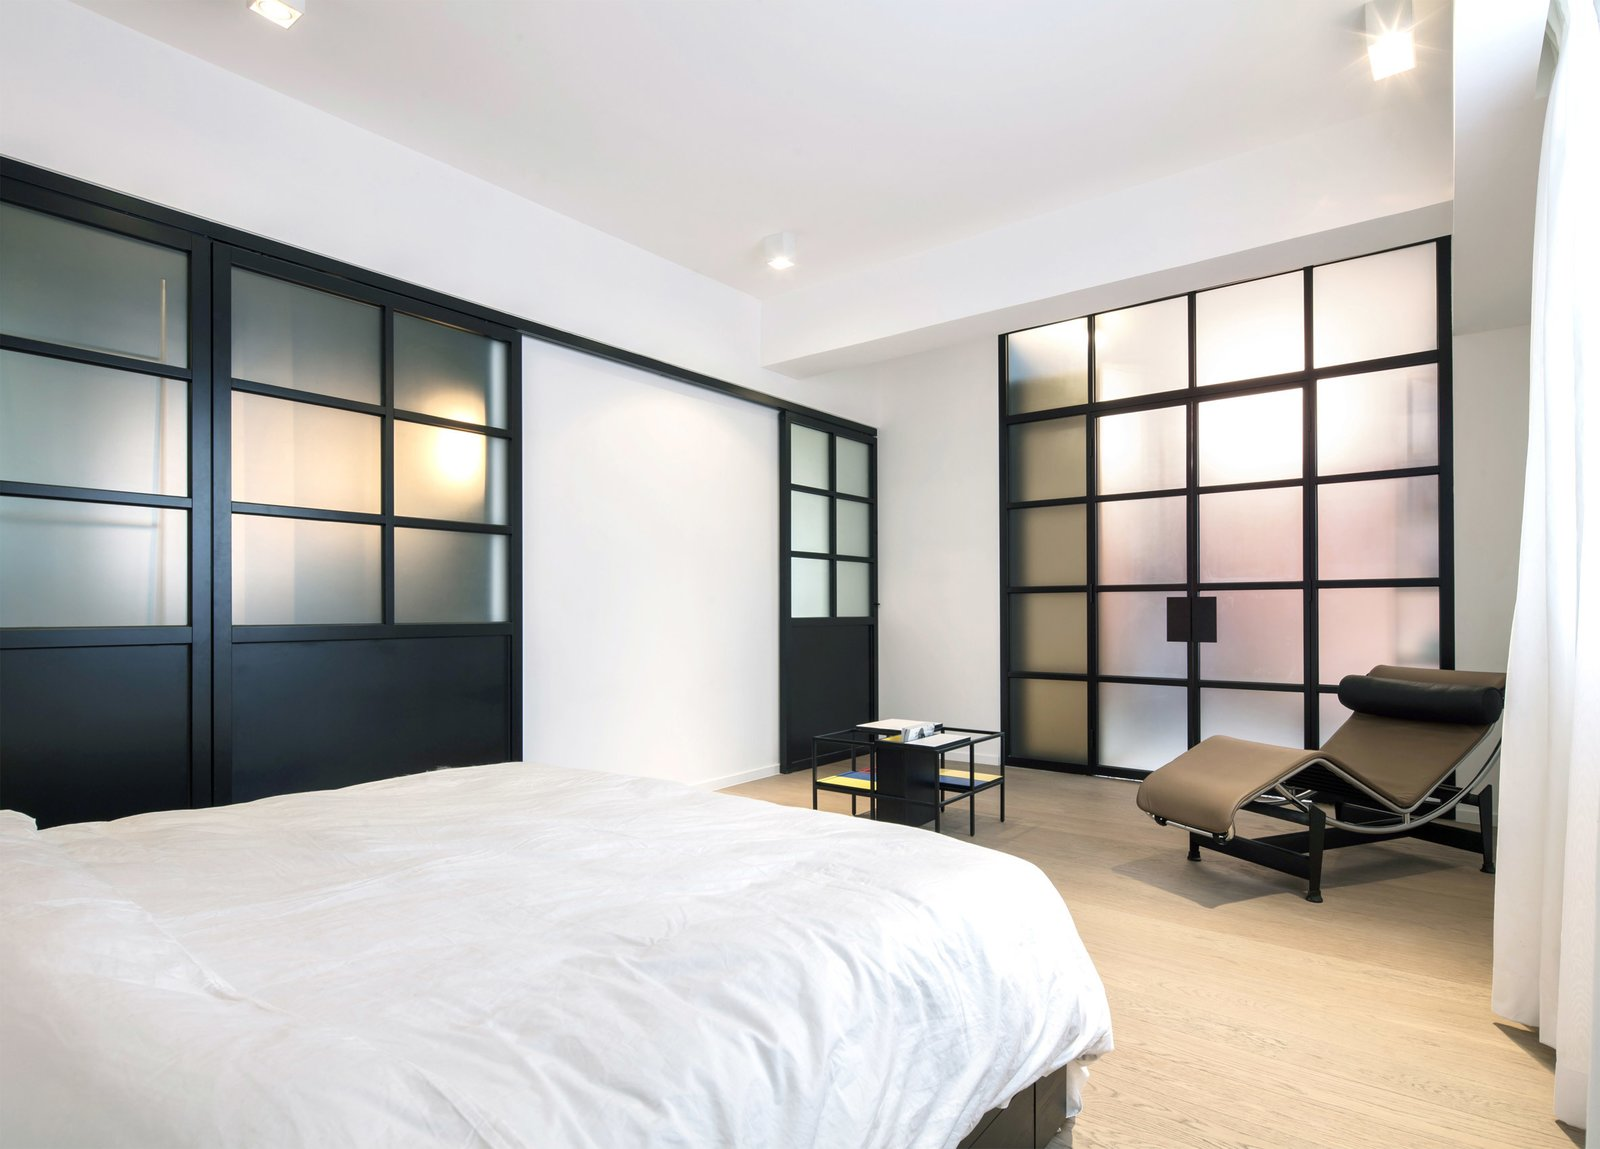 Bedroom, Chair, Ceiling Lighting, Bed, and Light Hardwood Floor  Photo 5 of 7 in See How This Colorful Hong Kong Apartment Was Made to Feel Bigger Than it Actually Is